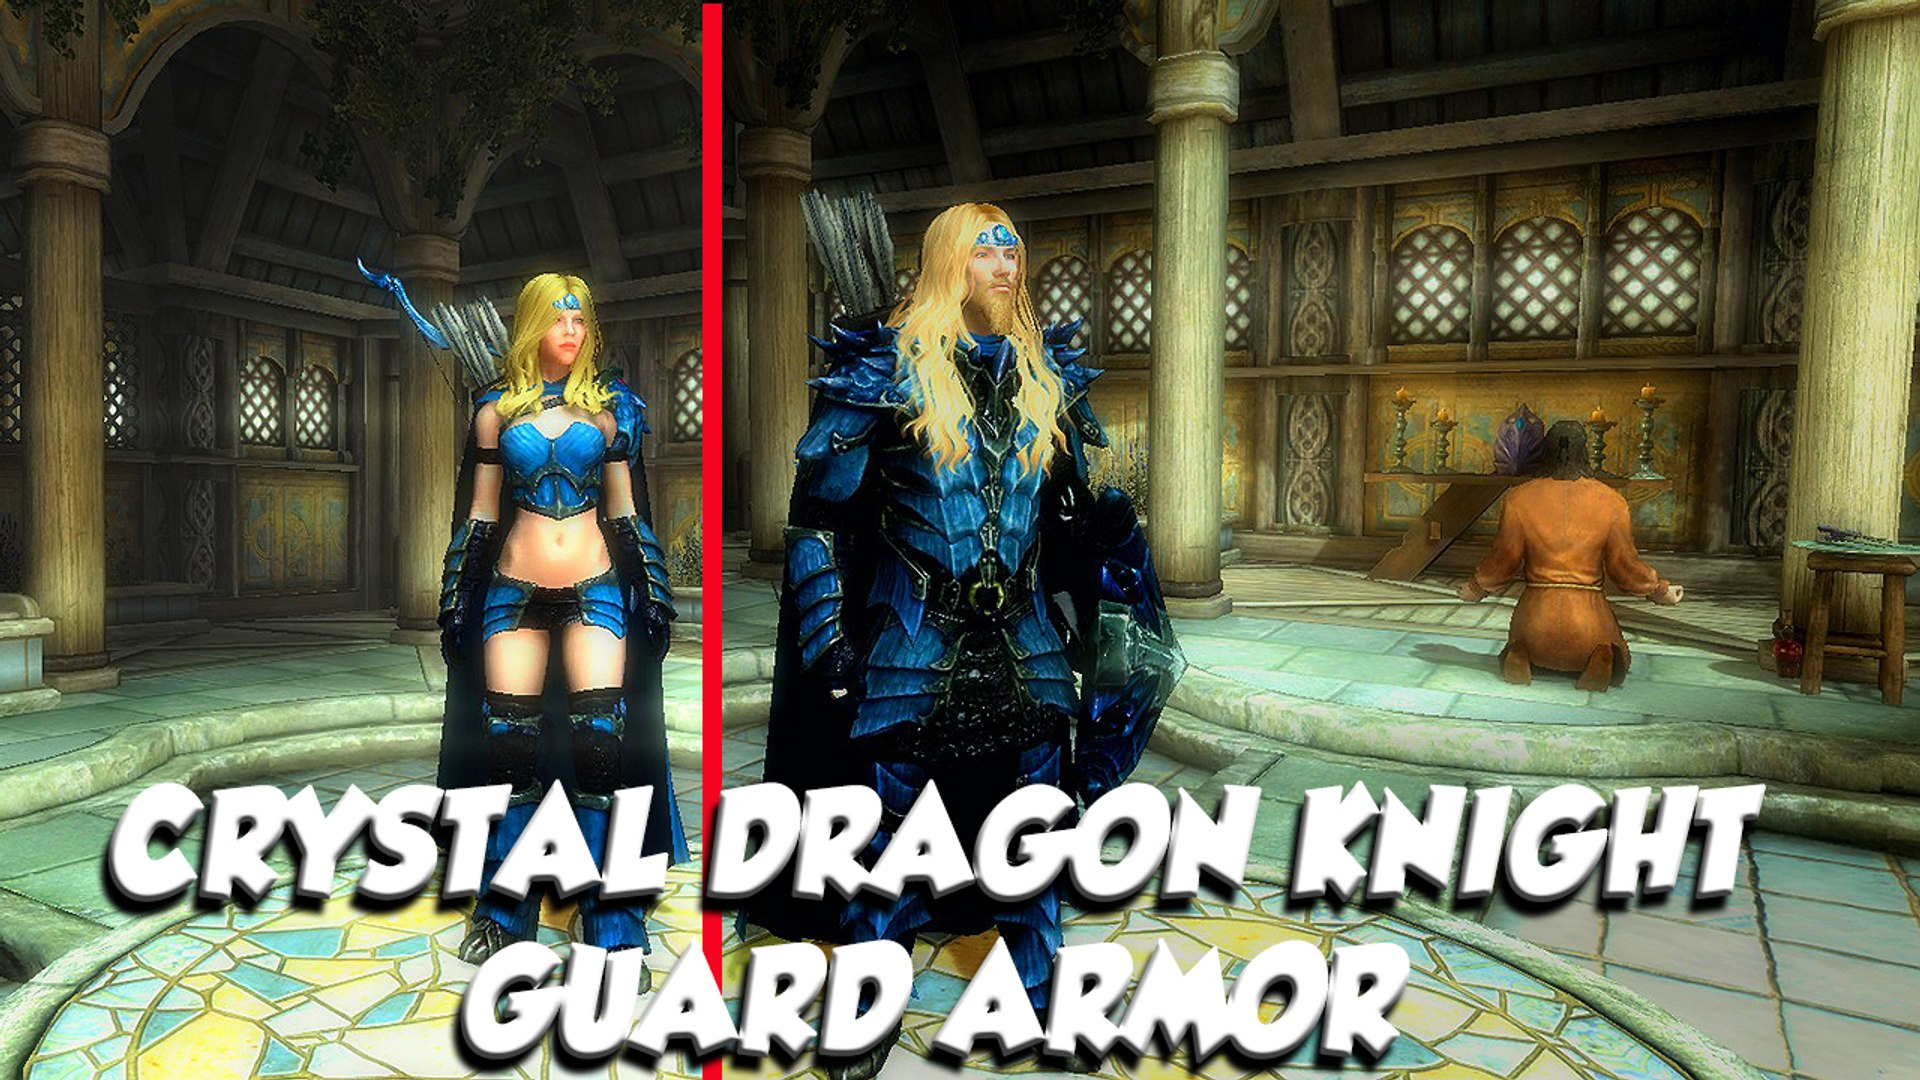 Skyrim Special Edition Mod Spotlight Crystal Dragon Knight Guard Armor Video Dailymotion I'm trying to find the mod for this helmet based on the imperial knight armor since it goes with the dragon knight armor set from immersive armors so nicely. skyrim special edition mod spotlight